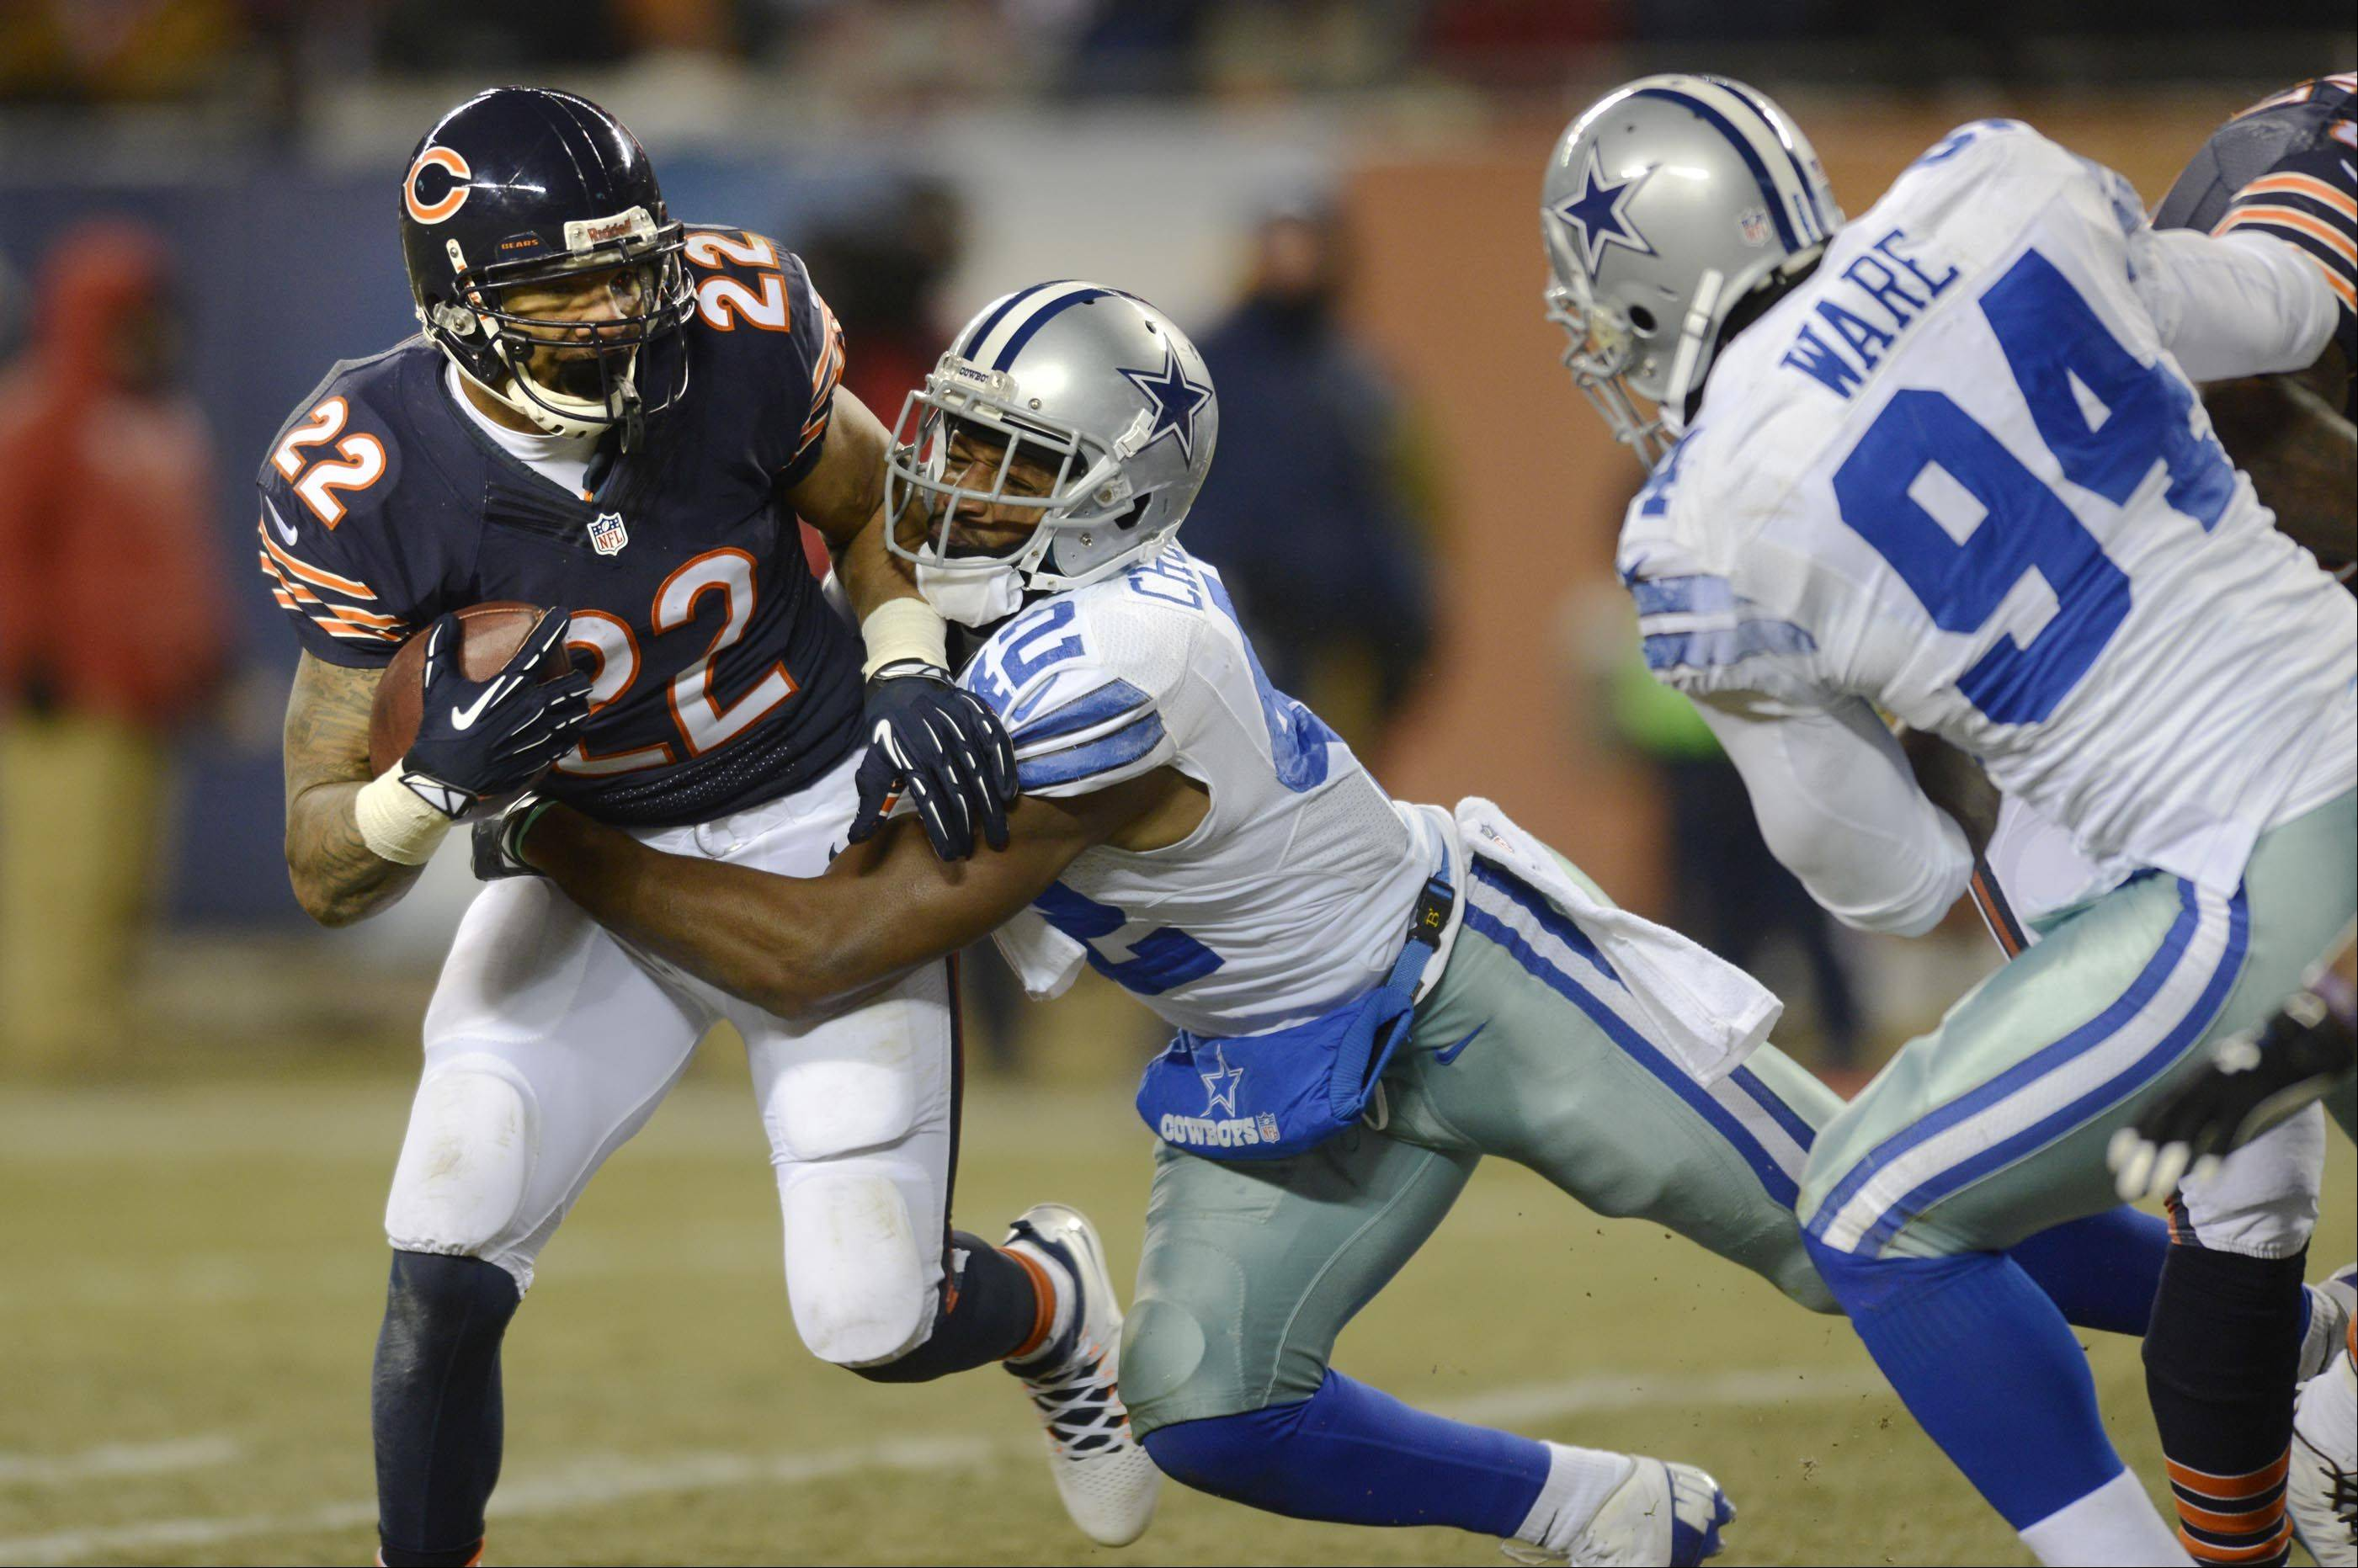 Chicago Bears running back Matt Forte tries to break away from Dallas Cowboys free safety Barry Church as Cowboys defensive end DeMarcus Ware fights a block.